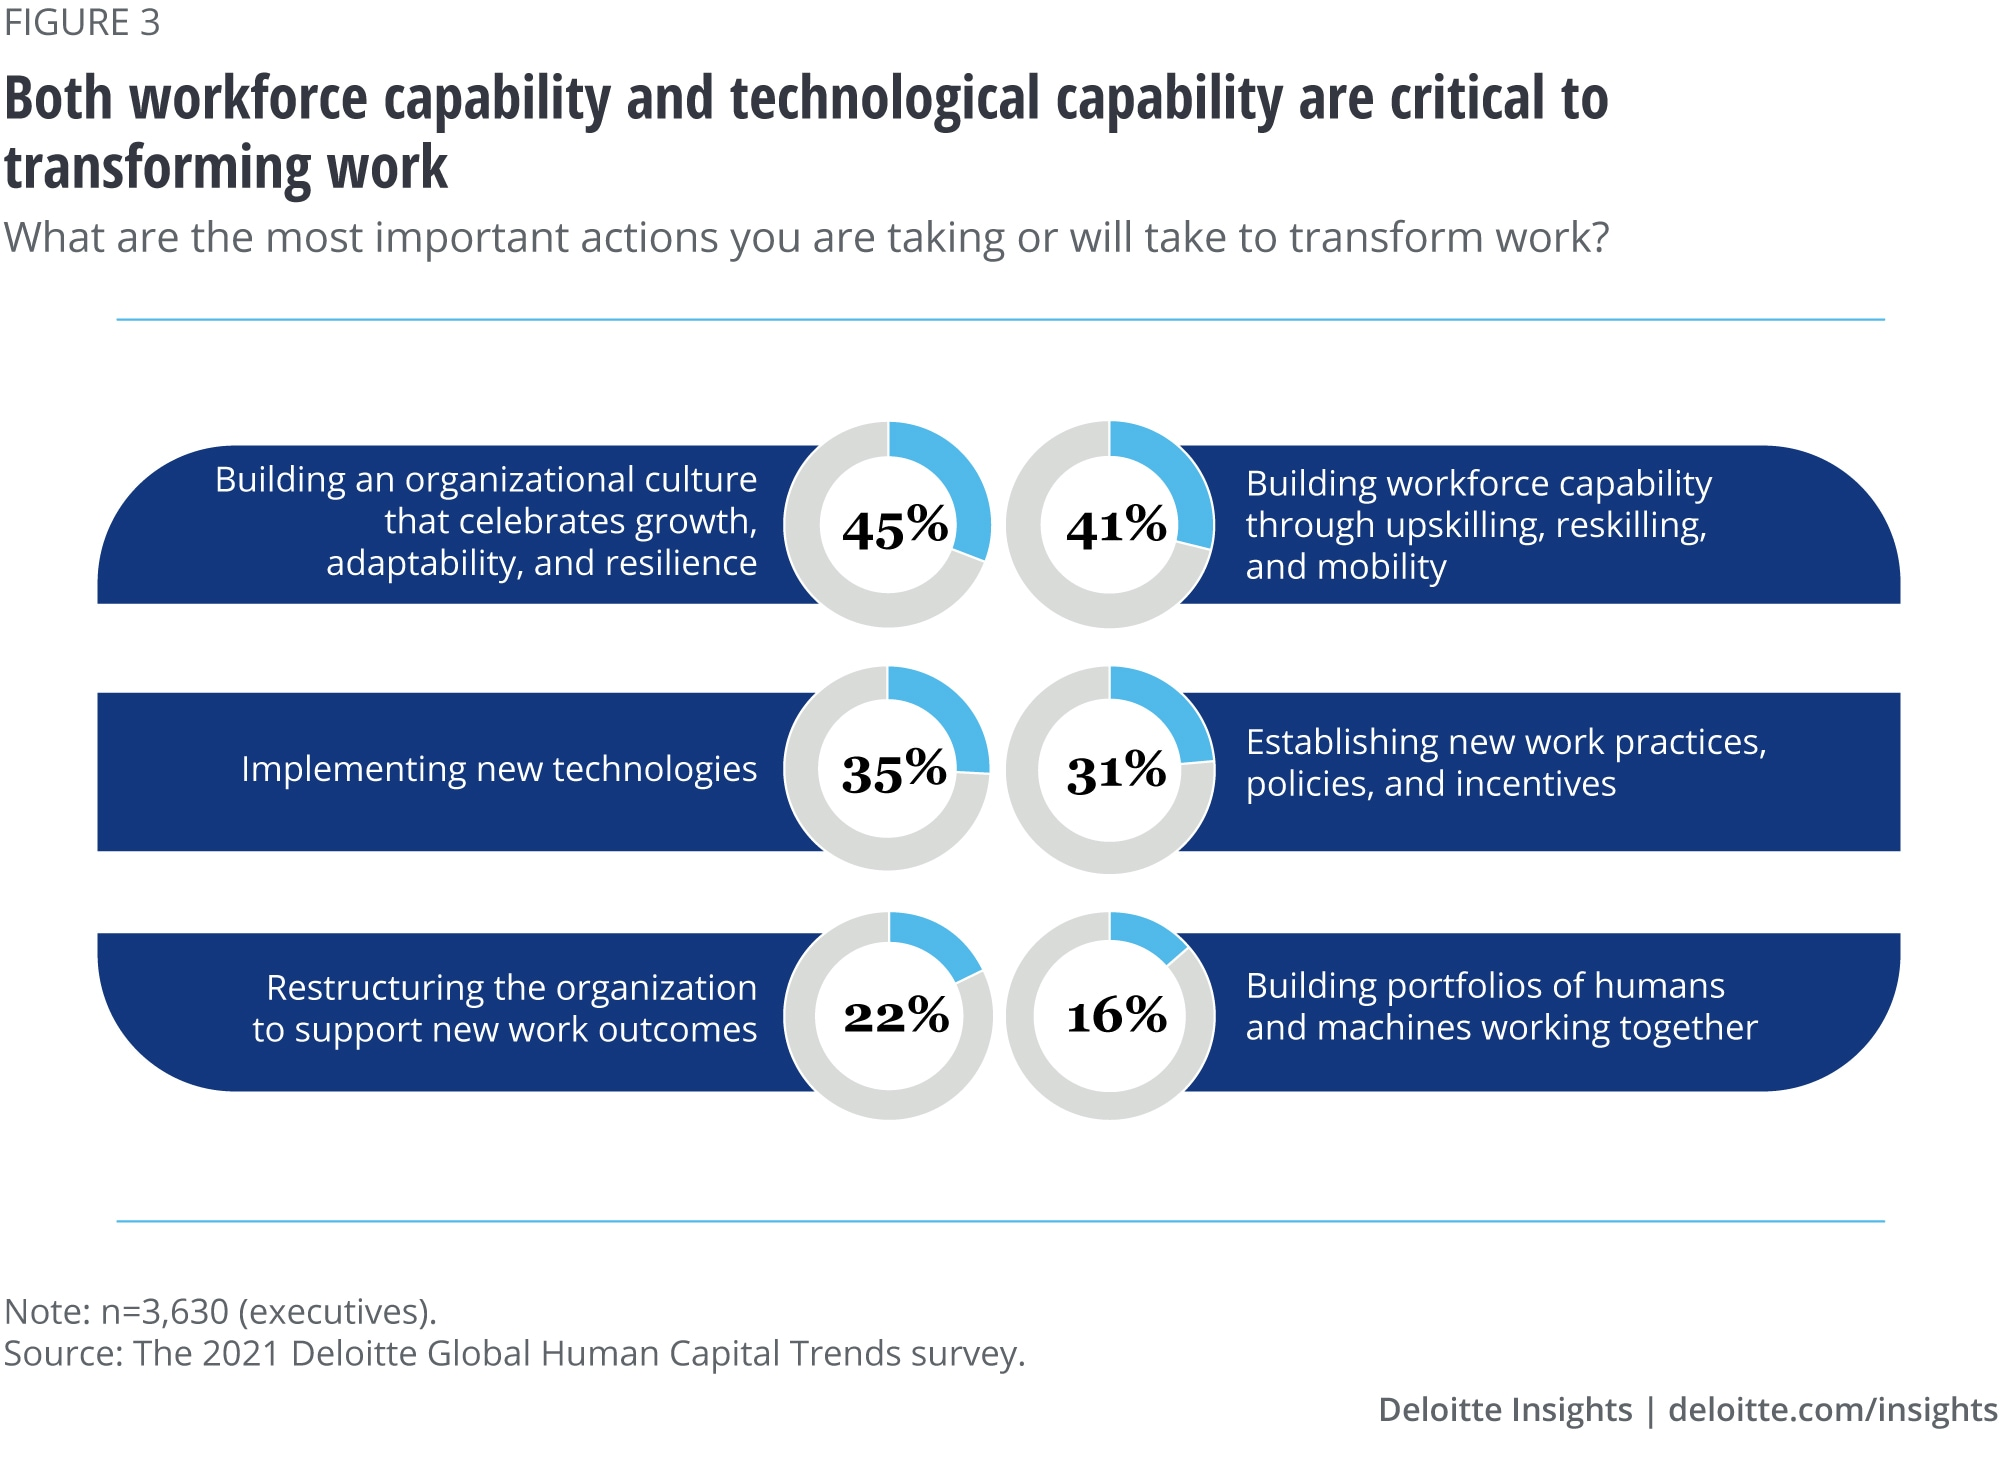 Both workforce capability and technological capability are critical to transforming work